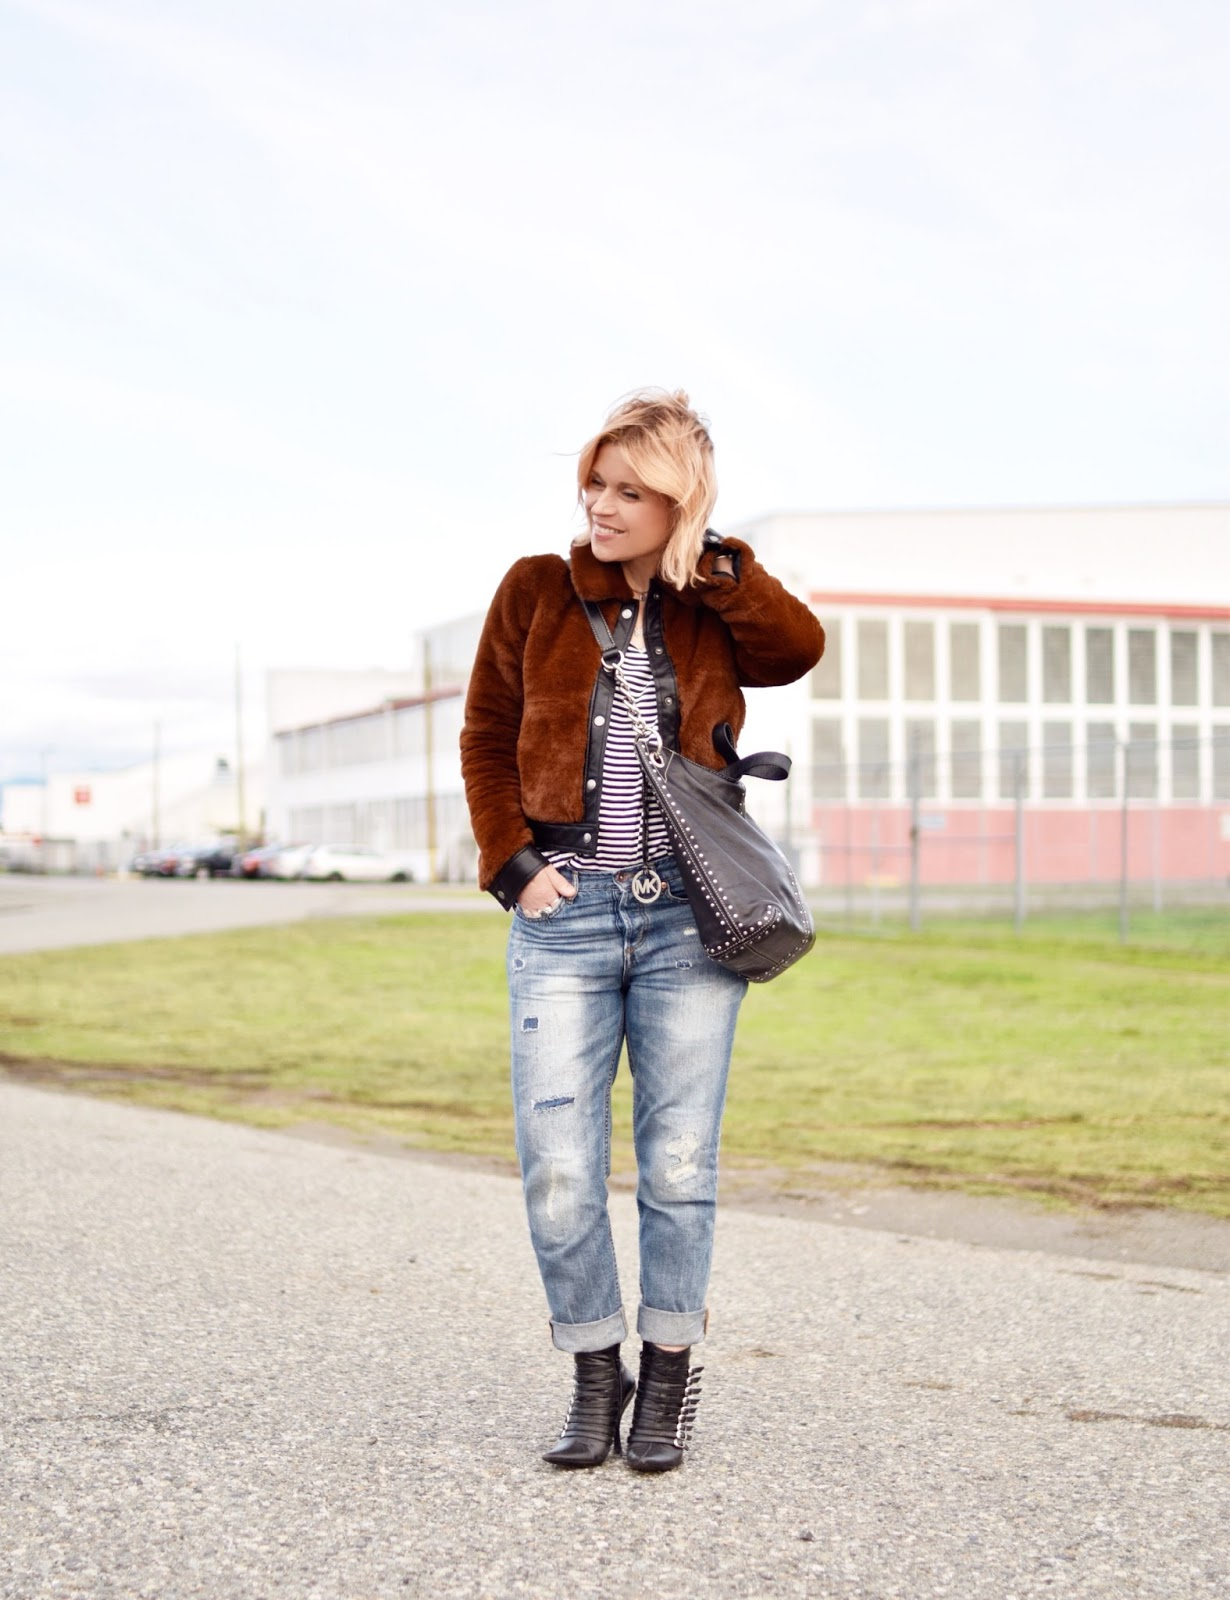 Monika Faulkner outfit inspiration - styling a faux-fur bomber with a striped tee, boyfriend jeans, and stiletto booties